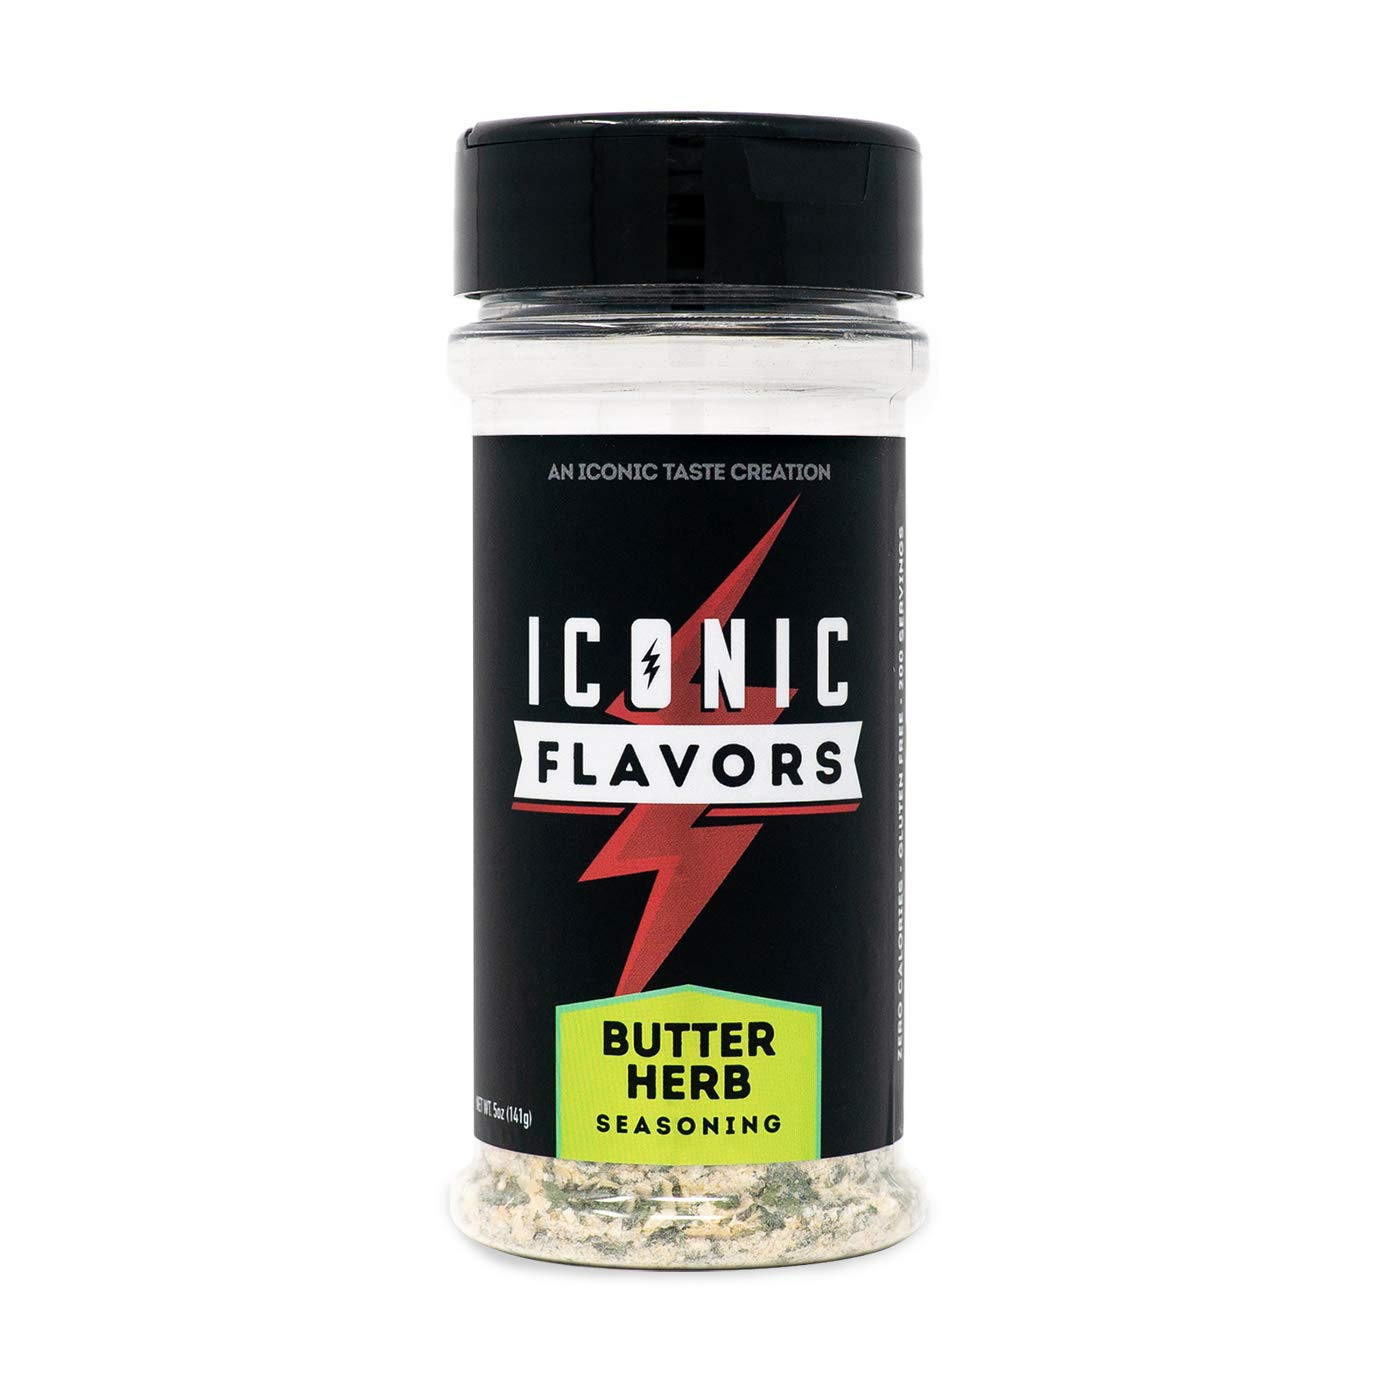 ICON Meals Gluten Free Zero Calorie Seasonings, Meal Prep, Flavor Enhancer, Keto Approved, Real Ingredients, Amazing Taste, Low Carb (Butter Herb)